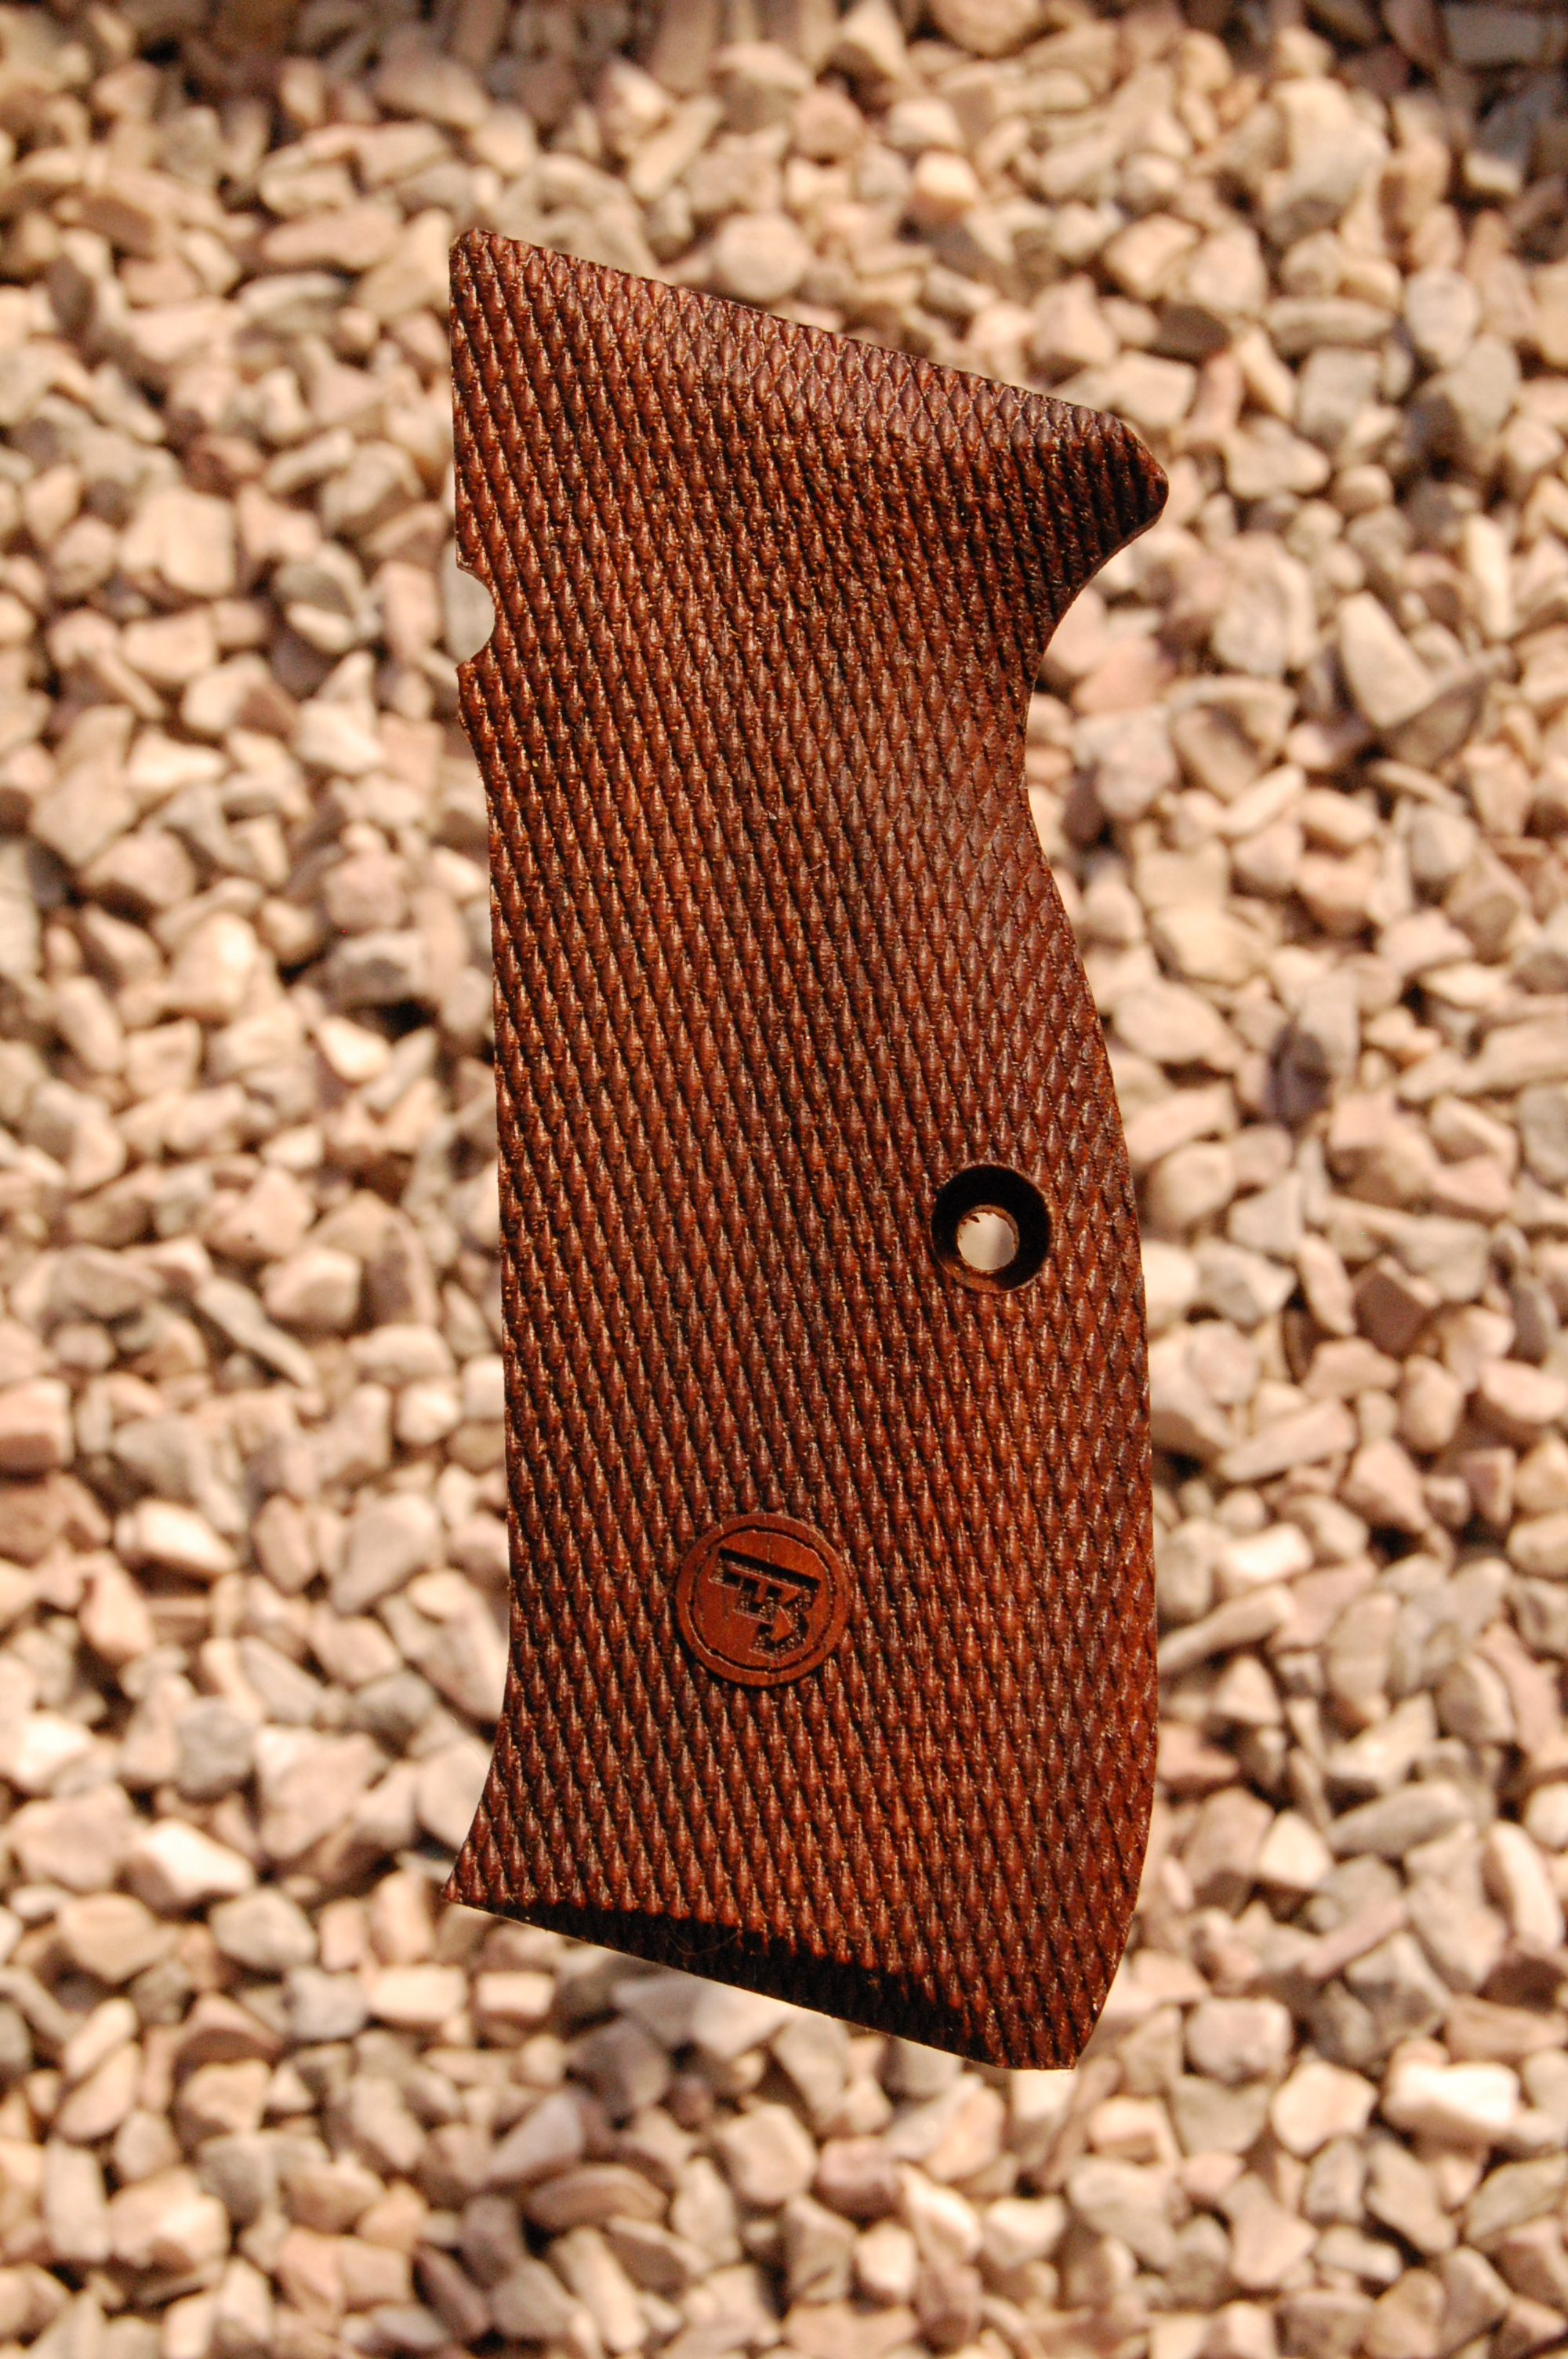 CZ 75 type 5 grips (fully checkered+logo) - full size